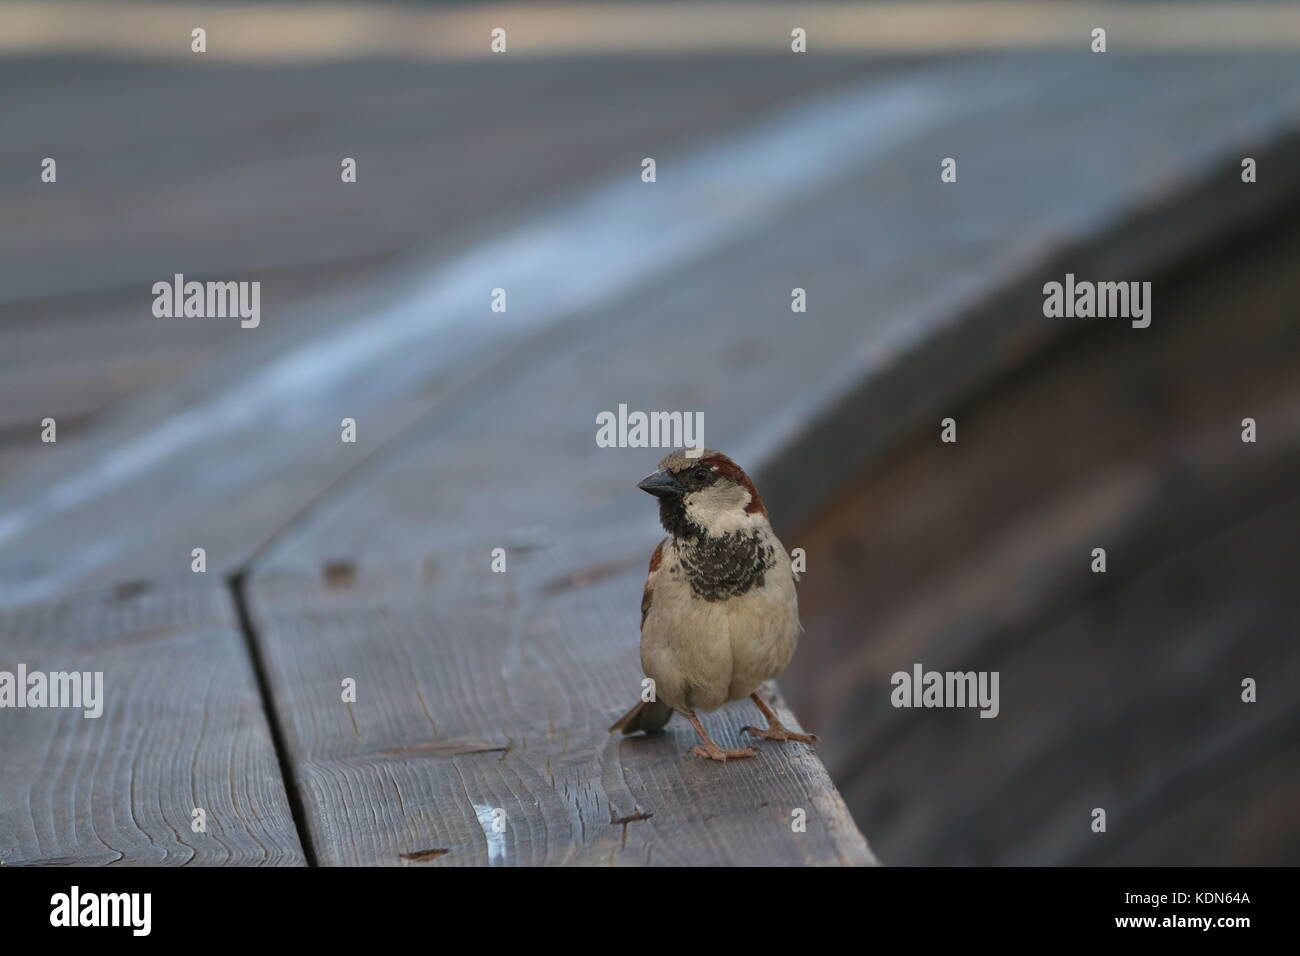 Sparrow - Stock Image